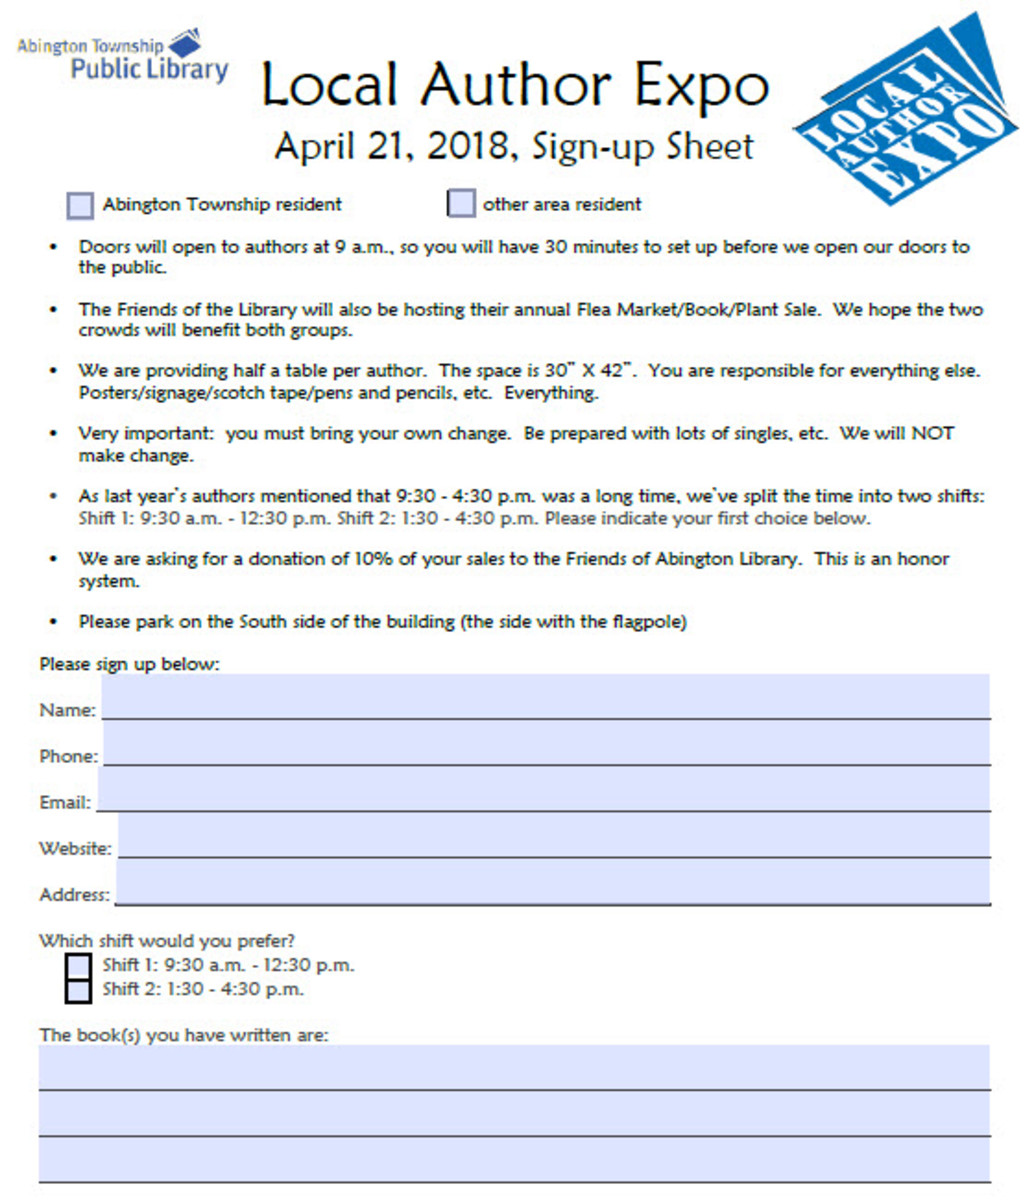 Autho Expo Sign-Up Sheet